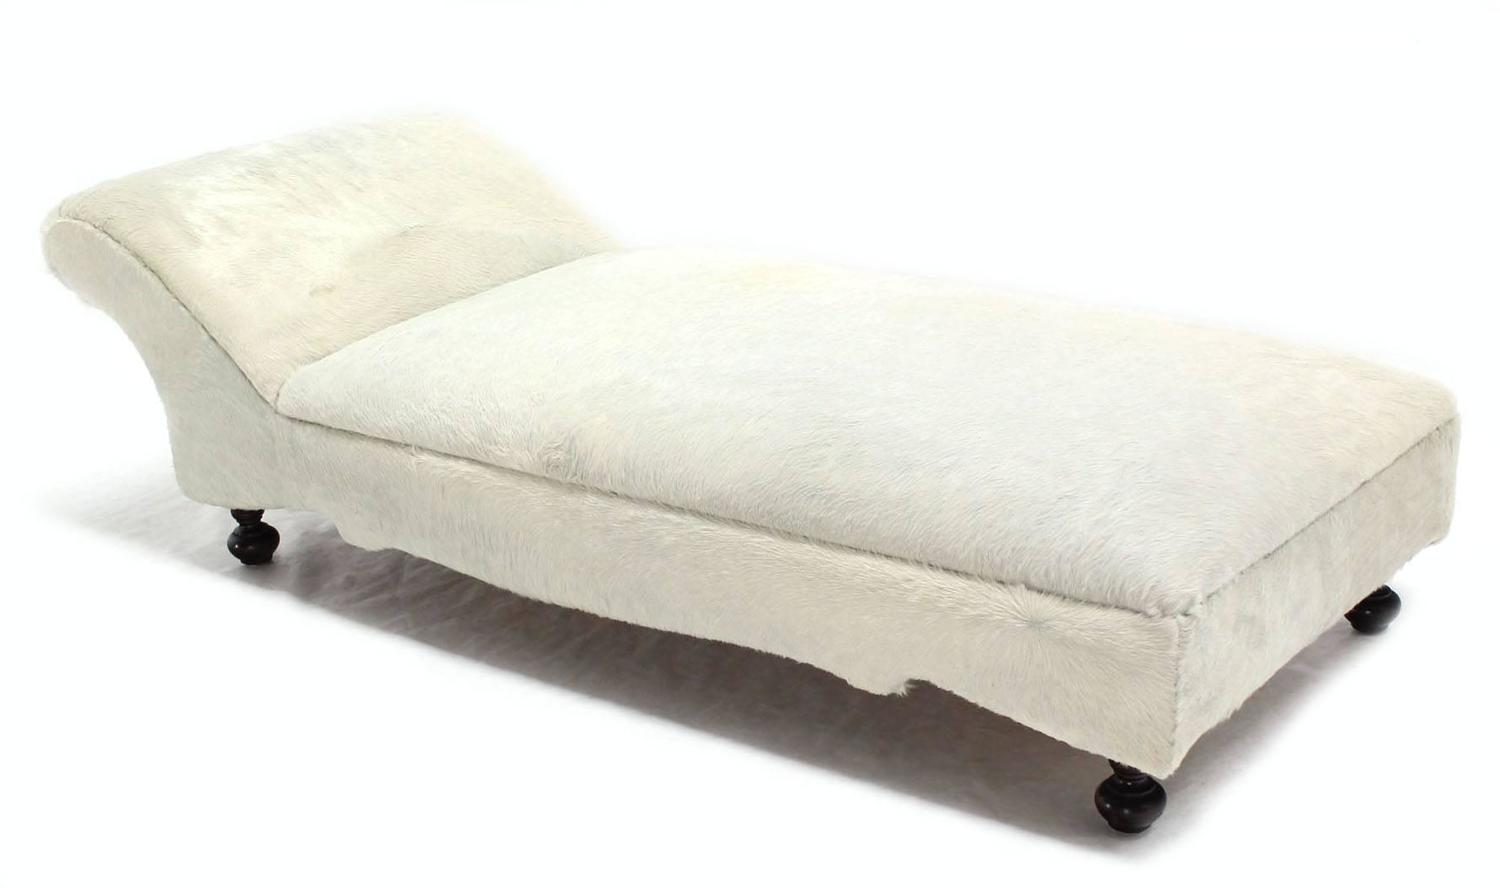 Cow hide upholstery chaise longue daybed for sale at 1stdibs for Chaise lounge cowhide